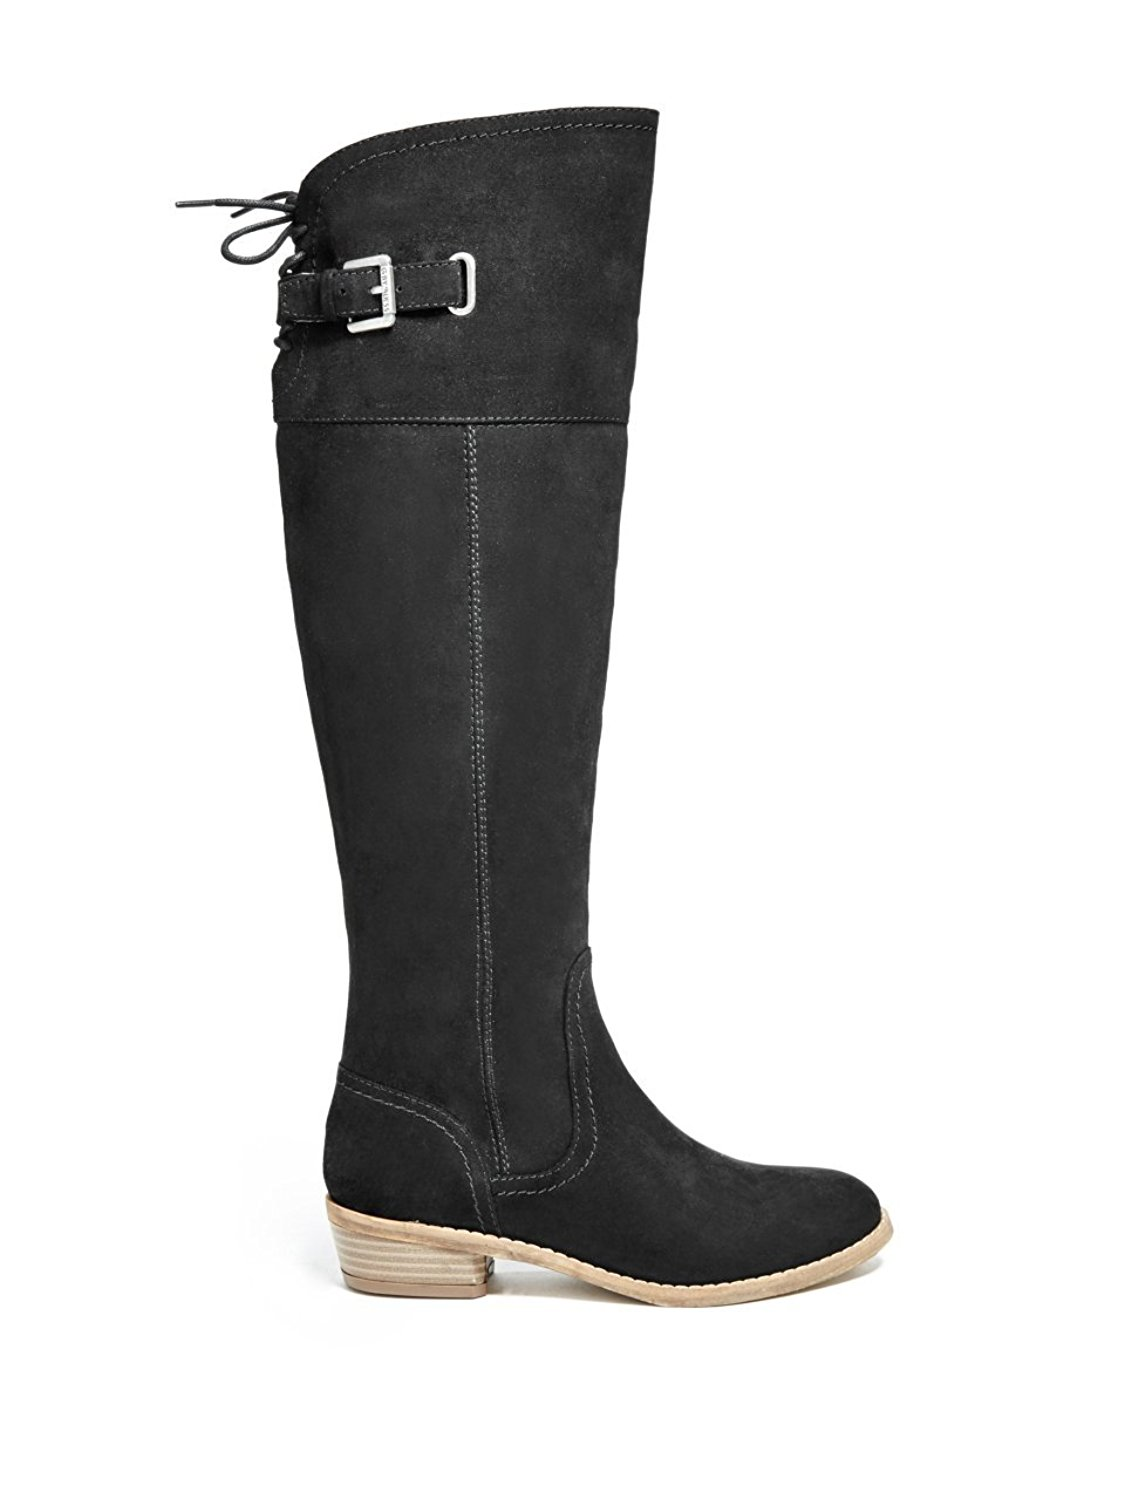 G By Guess Womens Aikon Closed Toe Knee High Riding Boots Black